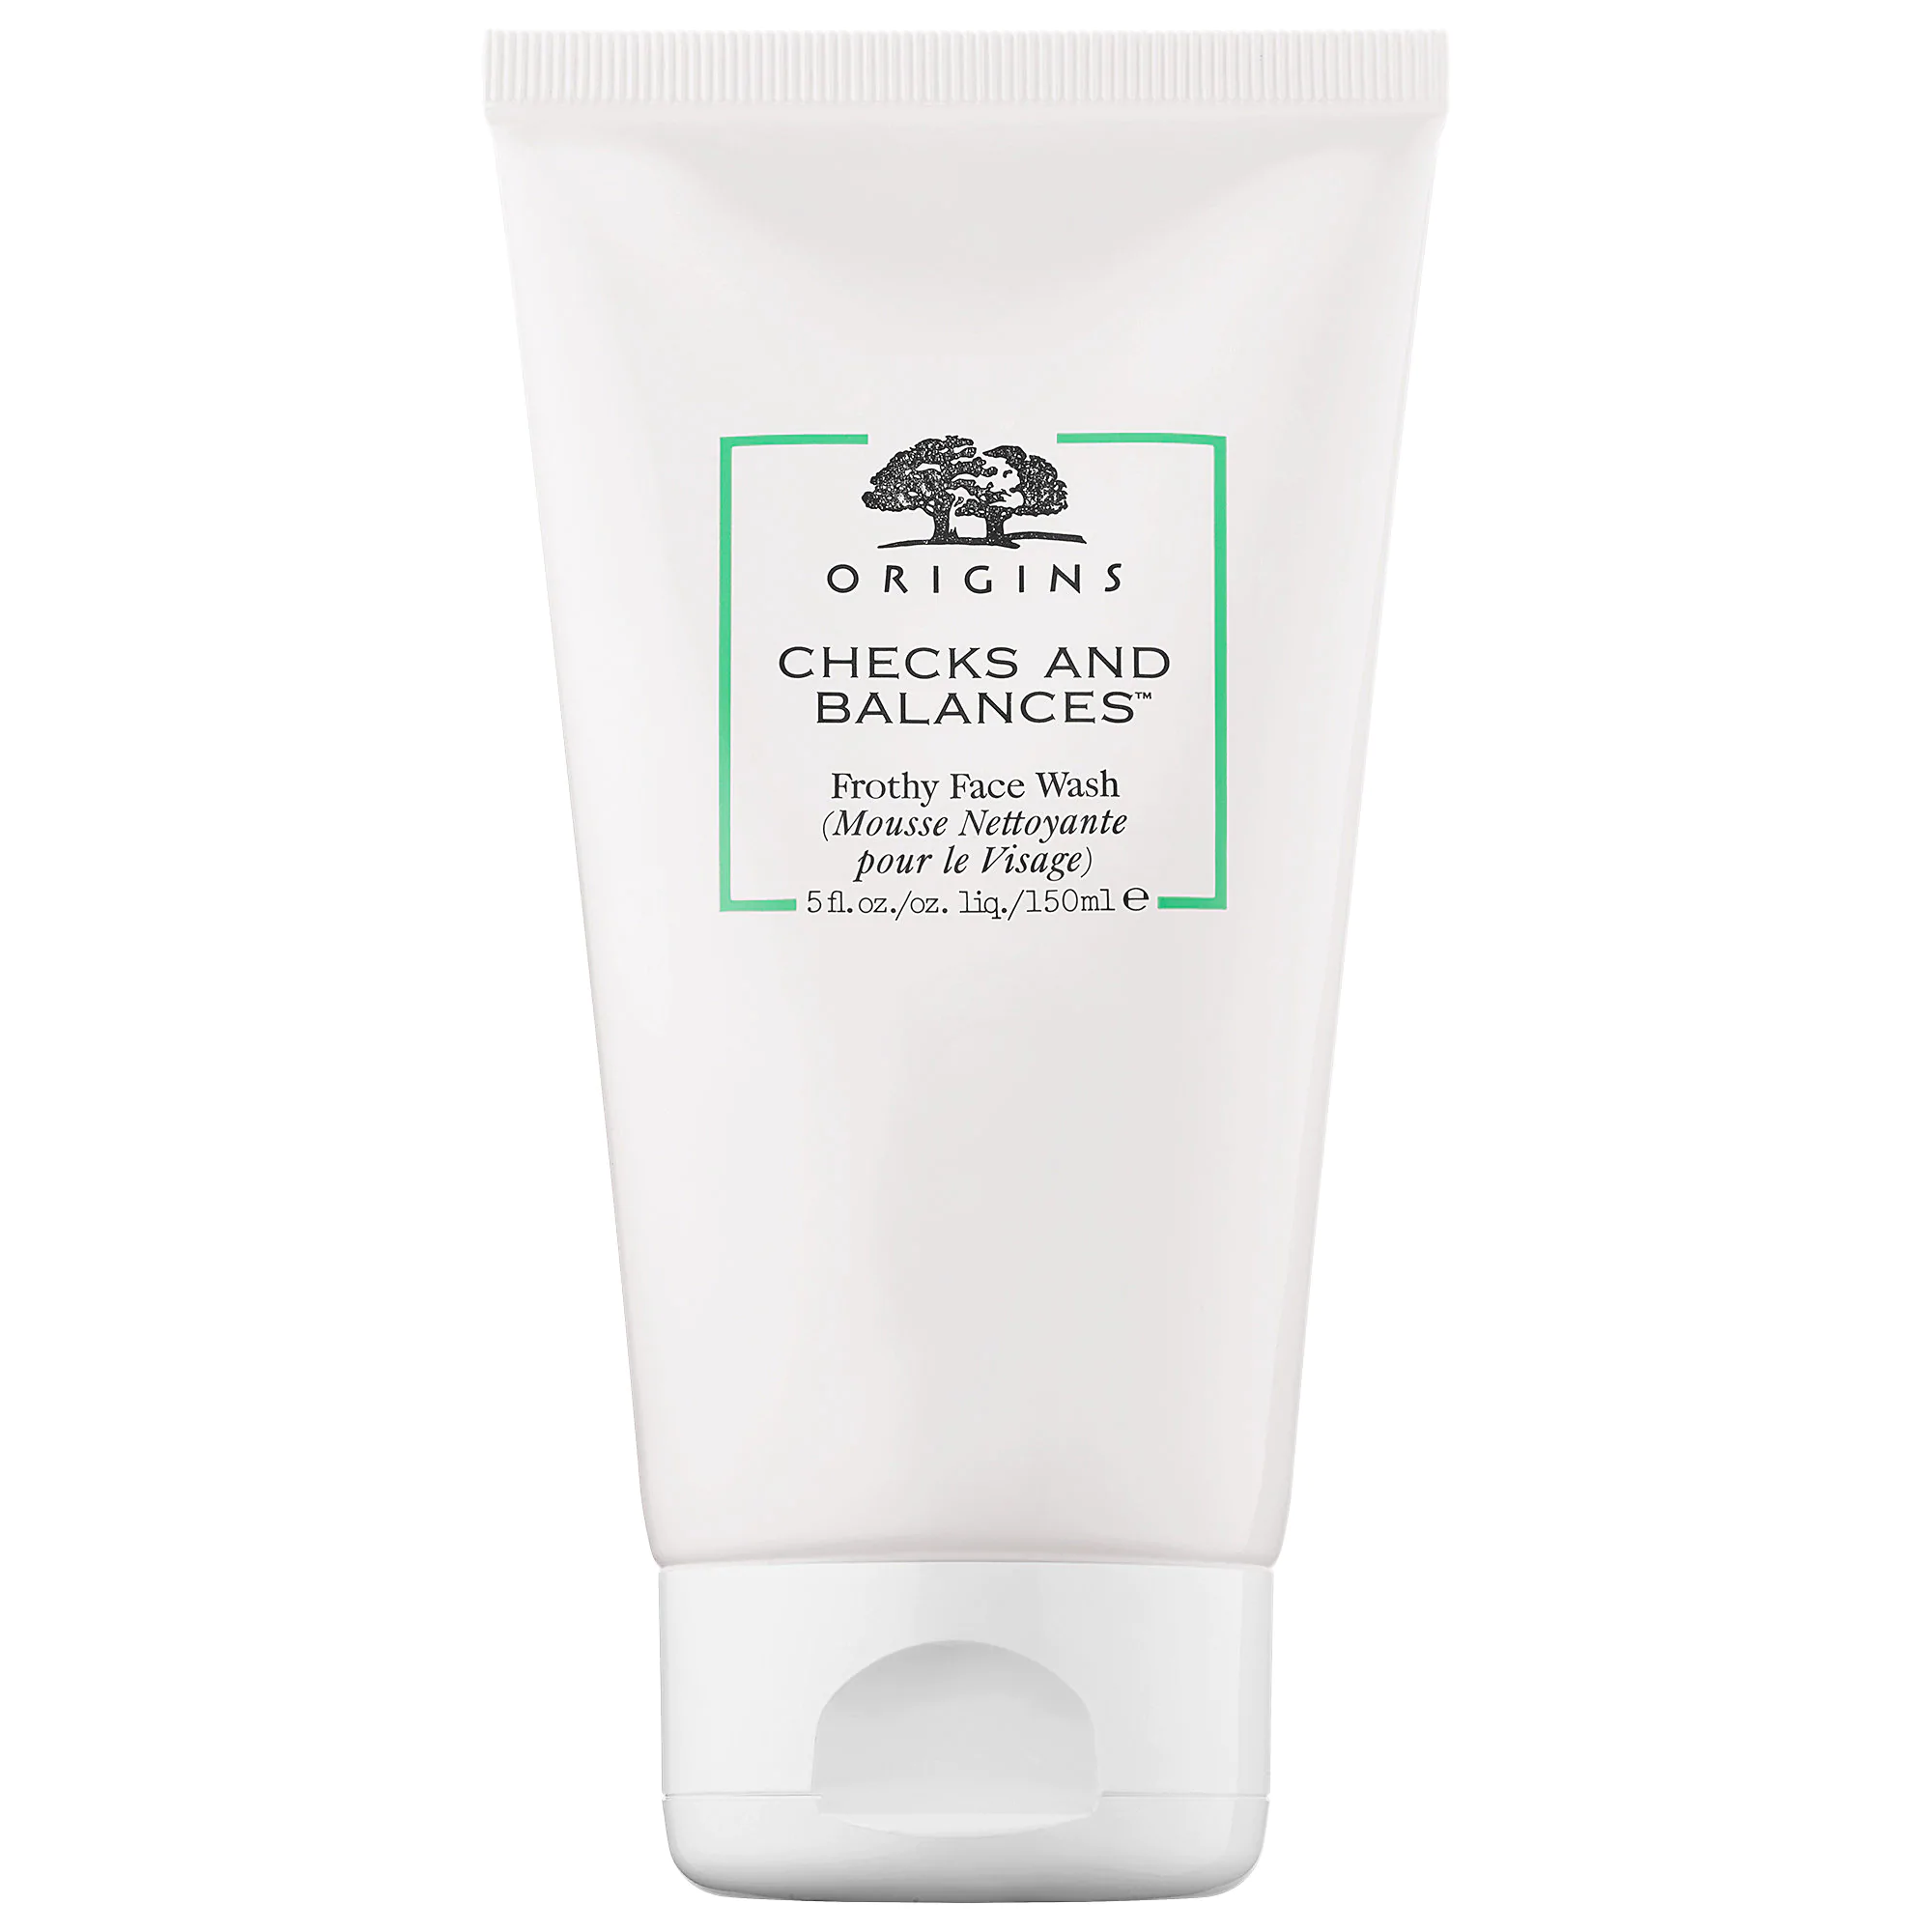 Origins Checks And Balances™ Frothy Face Wash